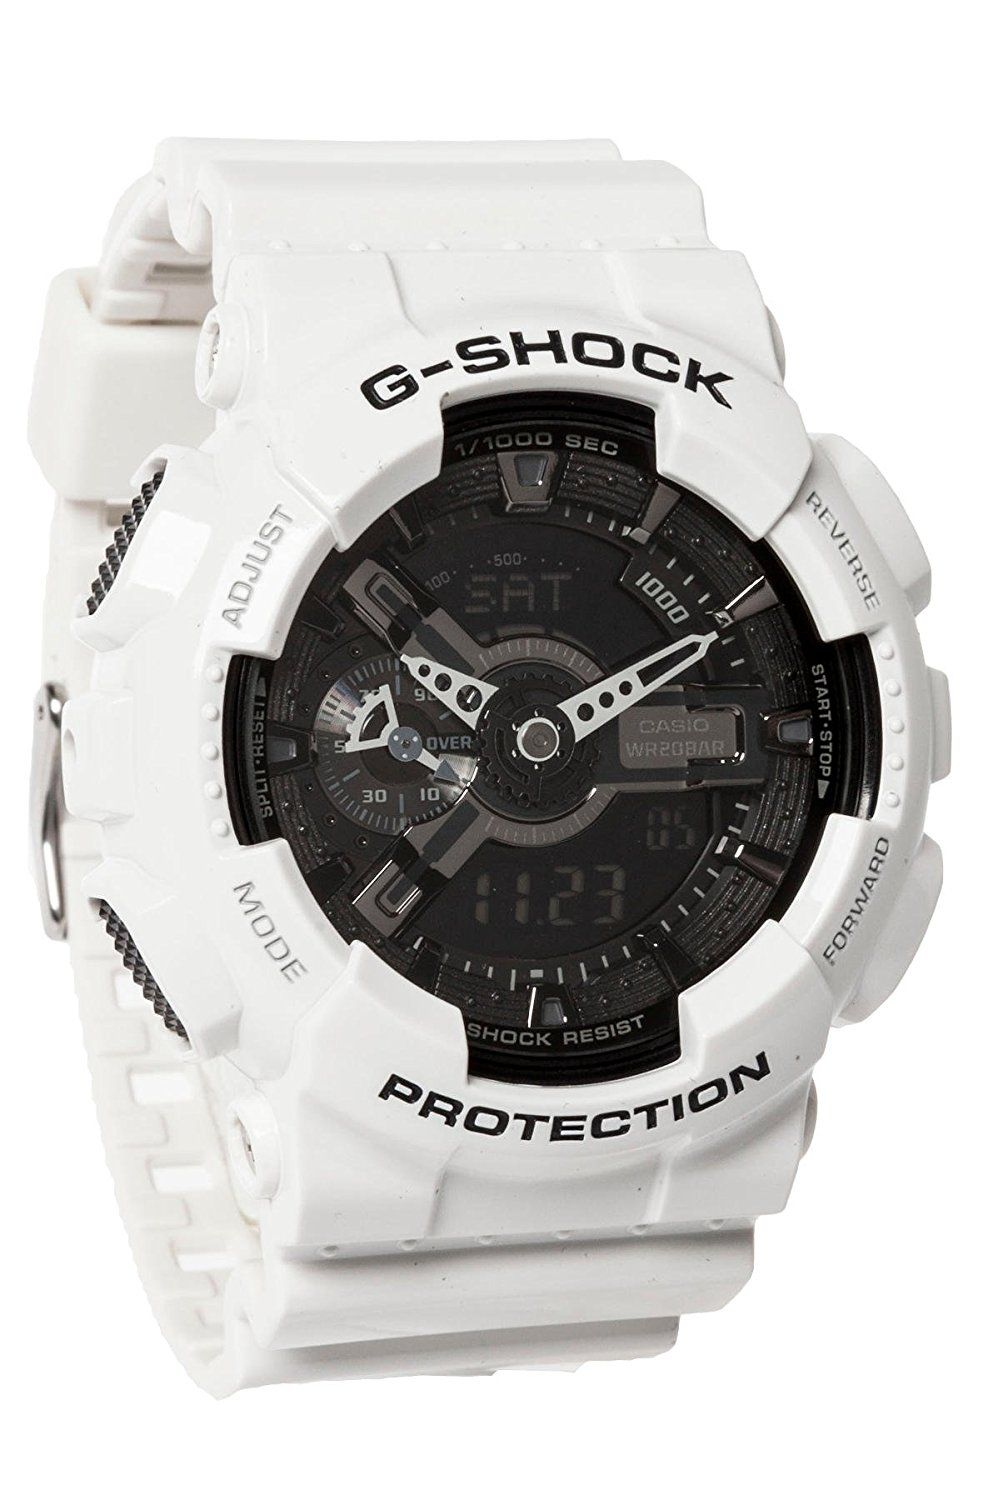 dd5f7c7f536f82 G-Shock GA-110 White | Watches for babe in 2019 | Luxury watches for ...